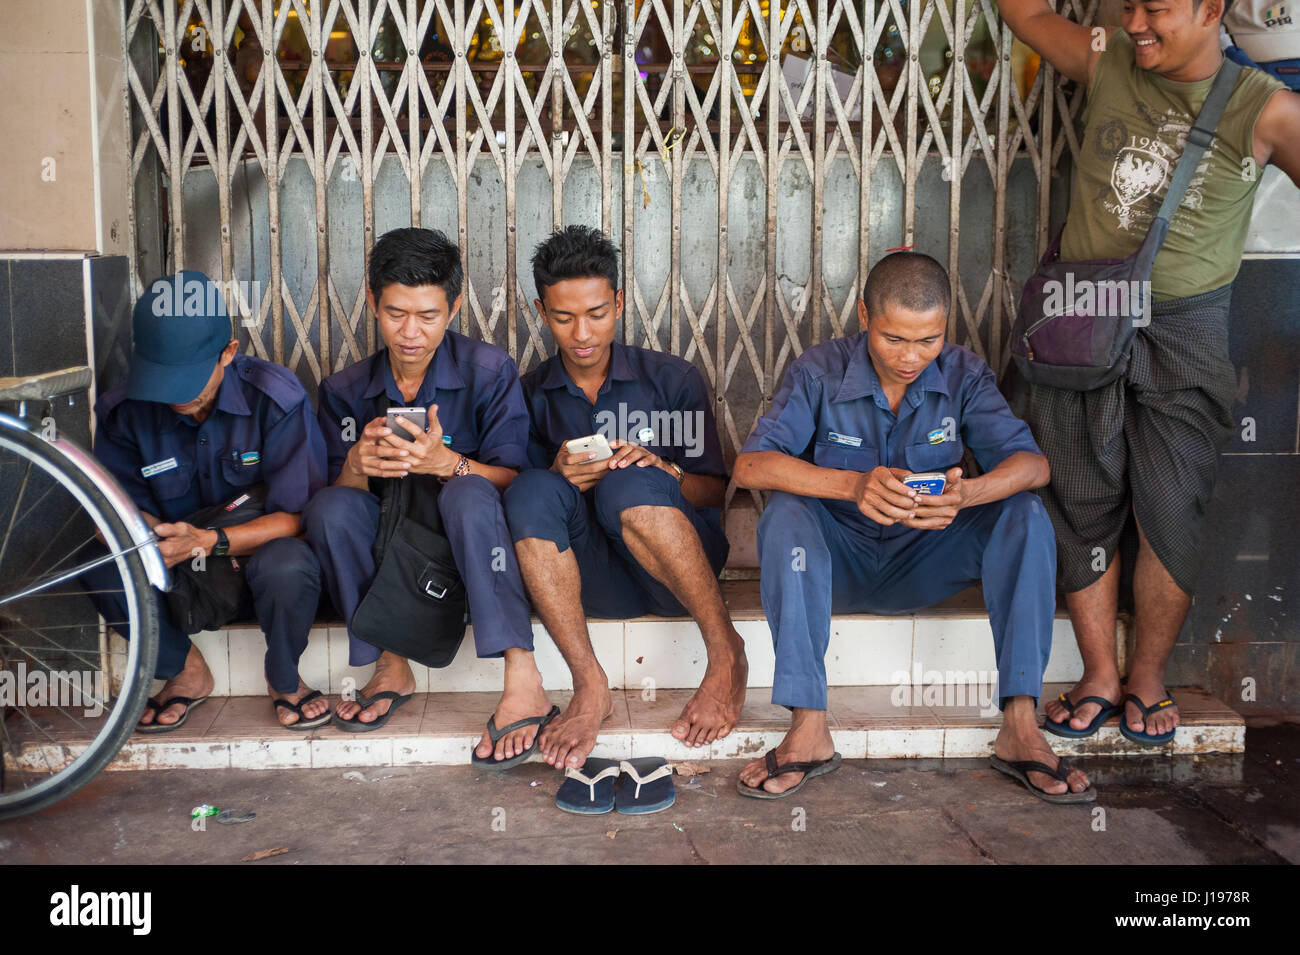 27.01.2017, Yangon, Republic of the Union of Myanmar, Asia - Workers sit in front of a Buddhist temple during their - Stock Image